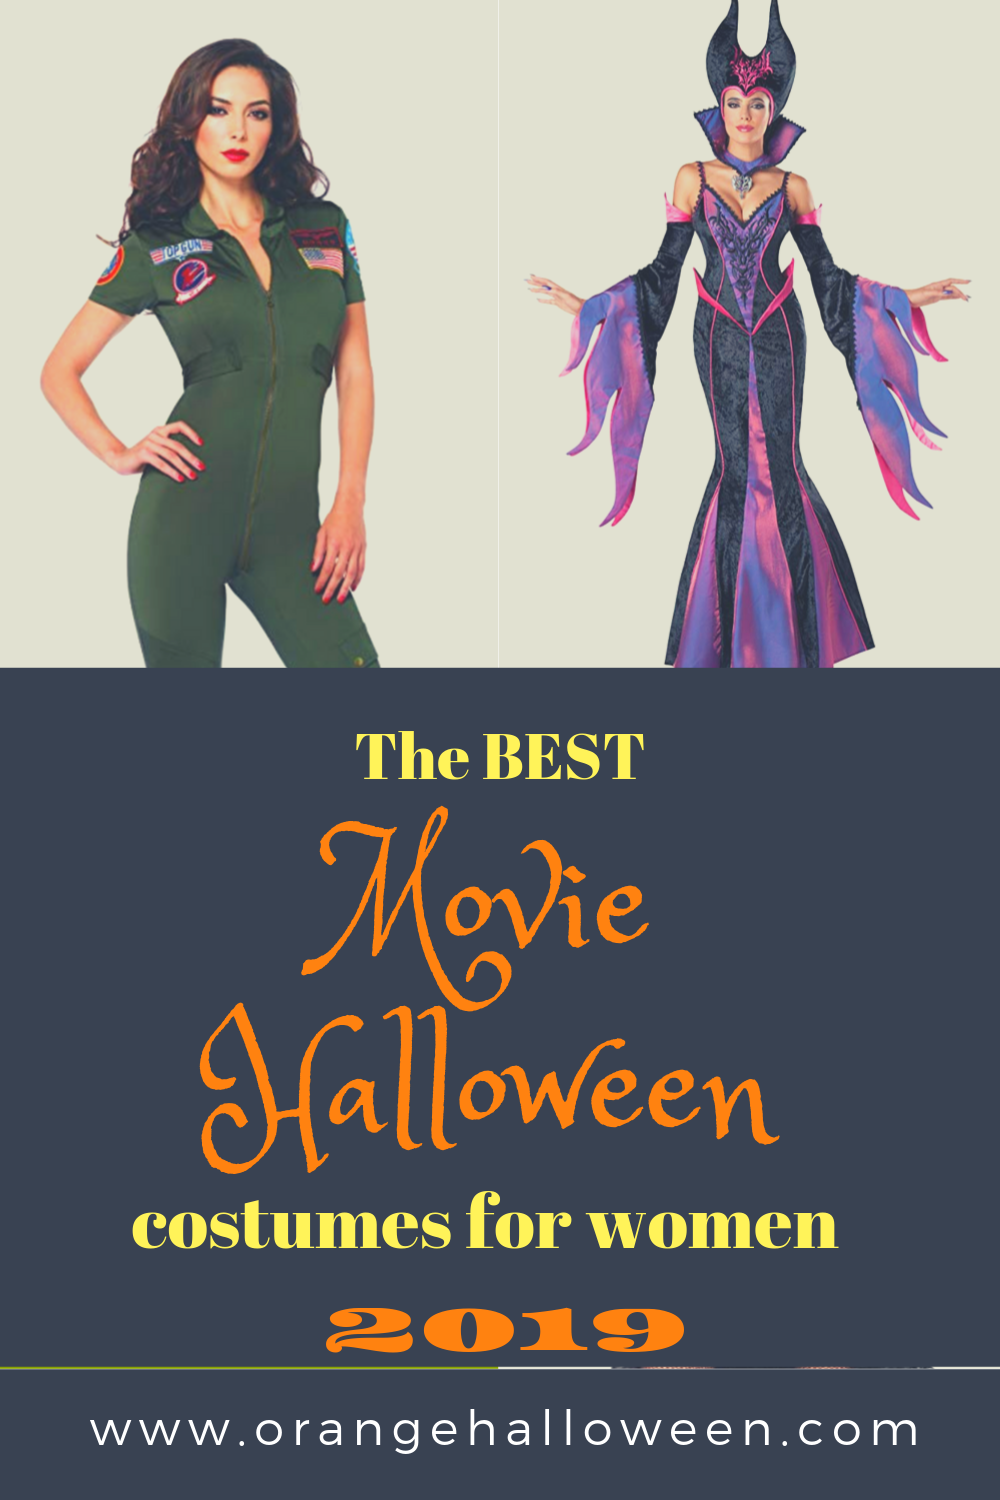 Looking for the BEST MOVIE Halloween costume ideas in 2019